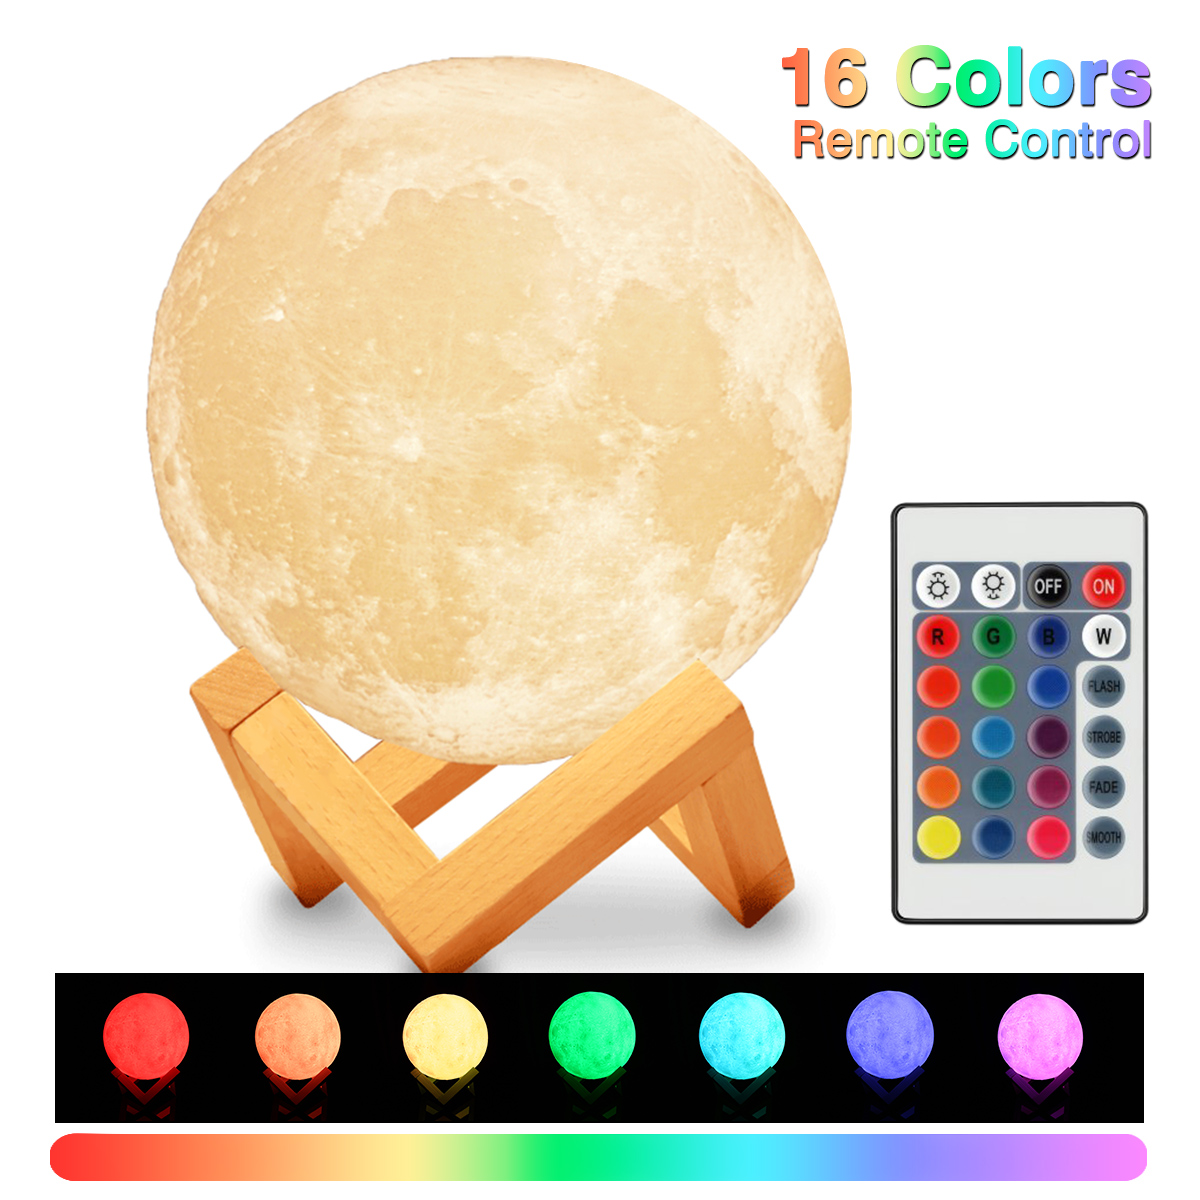 3D Print Moon Lamp Rechargeable 16 Colors Change Touch Switch Lunar Light 15cm Dimmable Baby Bedroom Night Light Home Decor 3d print moon lamp rechargeable night light rgb color change touch switch bedroom 3d lunar moon lamp home decor creative gift